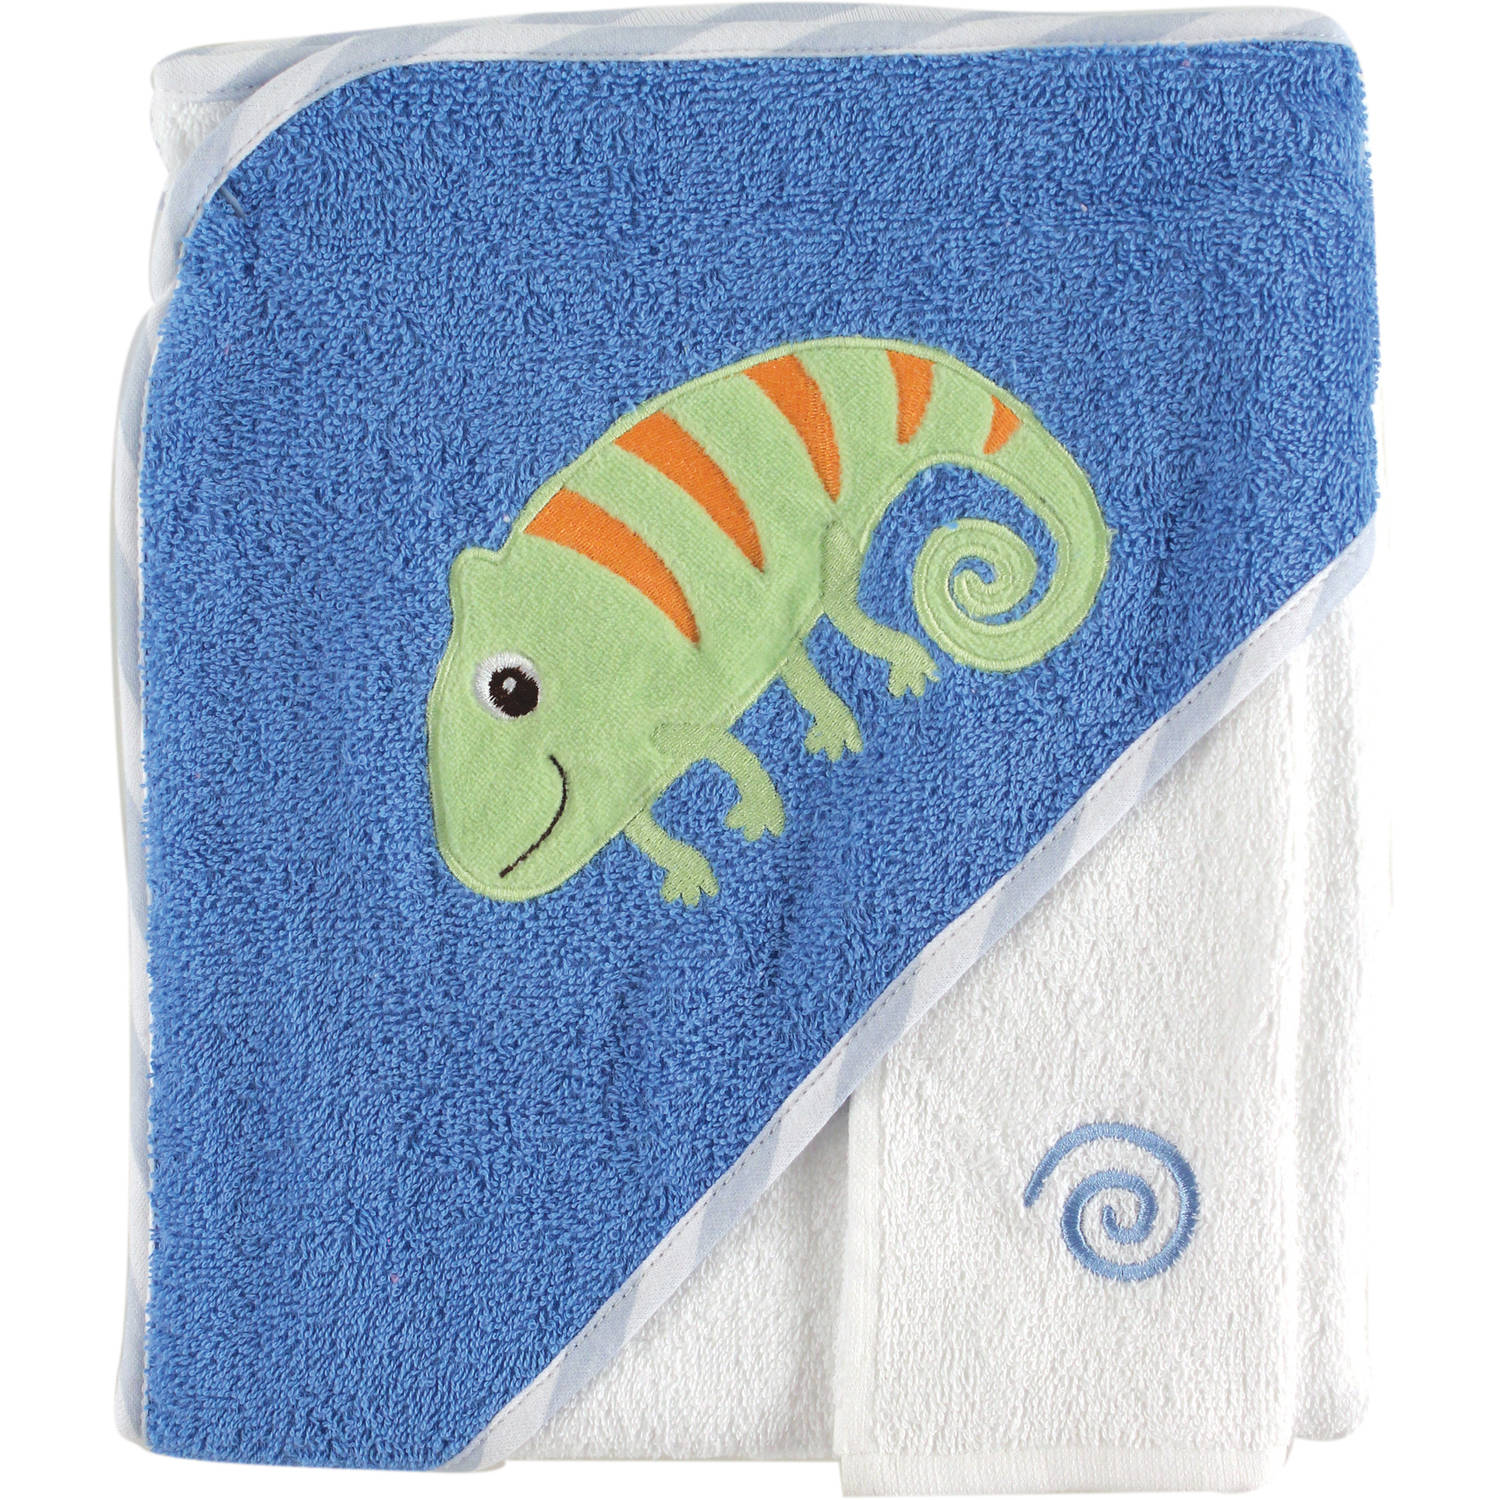 Luvable Friends Tropical Hooded Towel and Washcloth Woven, Choose Your Color by Luvable Friends